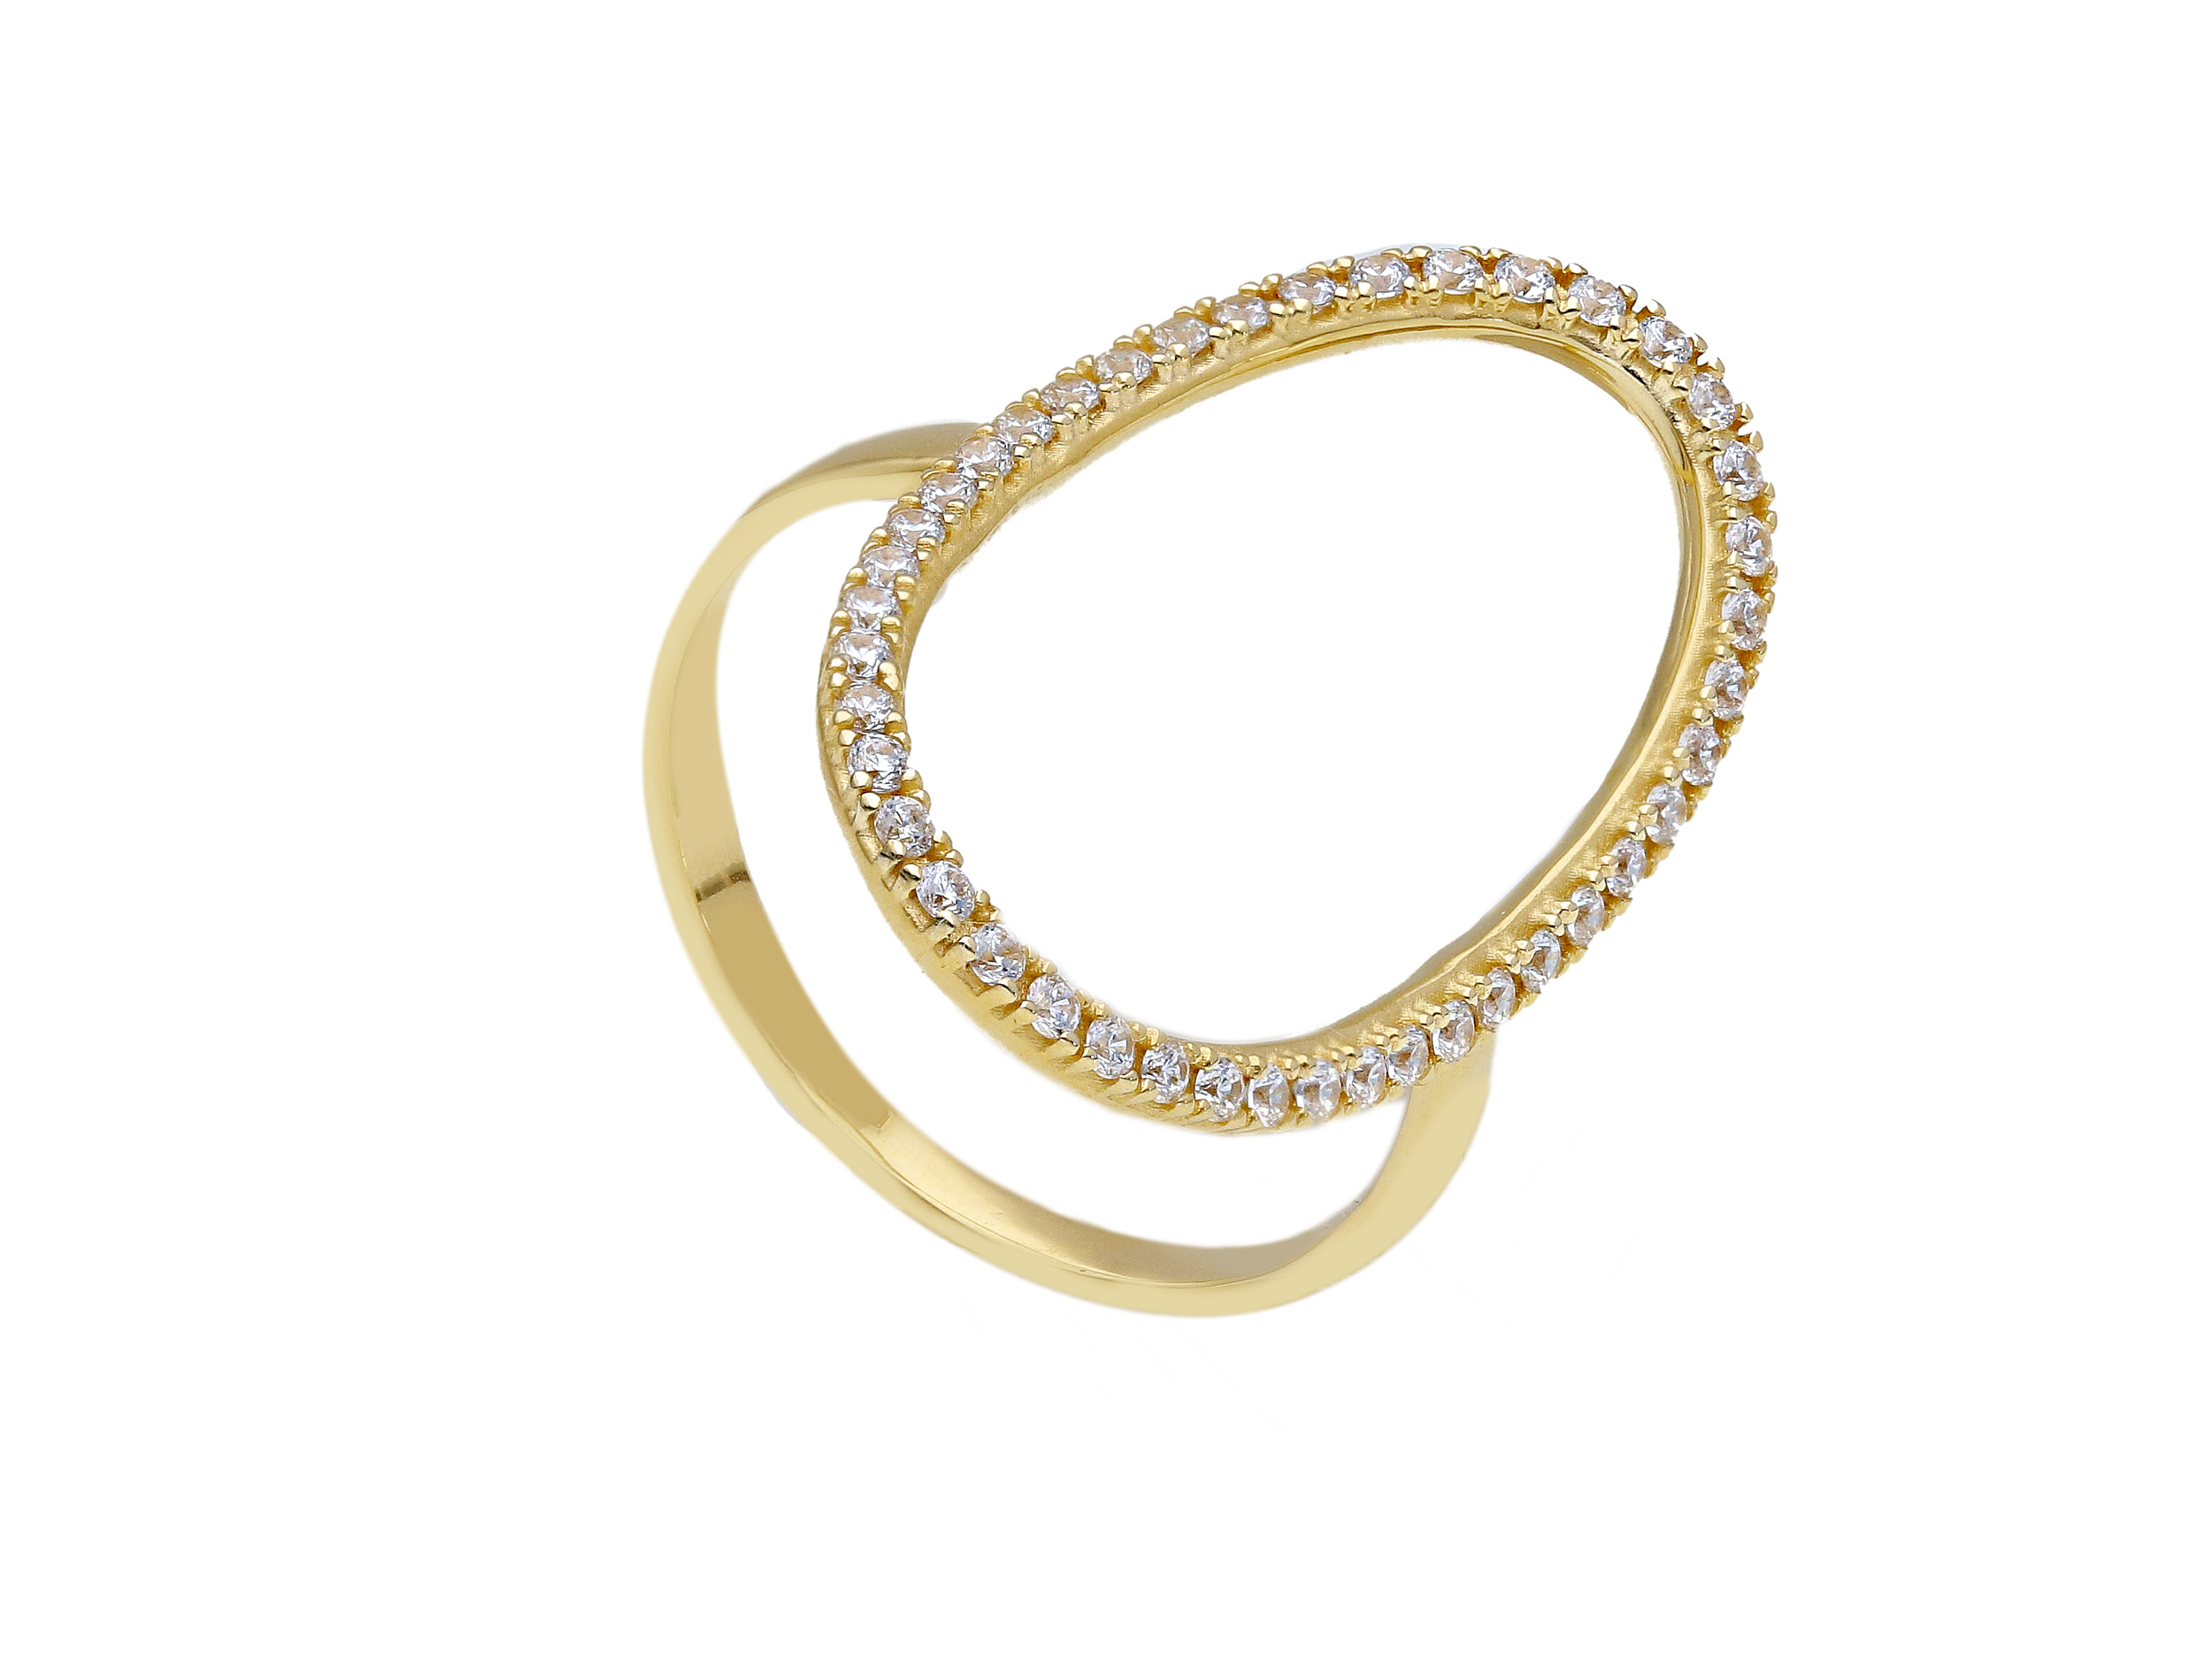 Beautiful 18ct Yellow Gold Ring with Cubic Zirconia